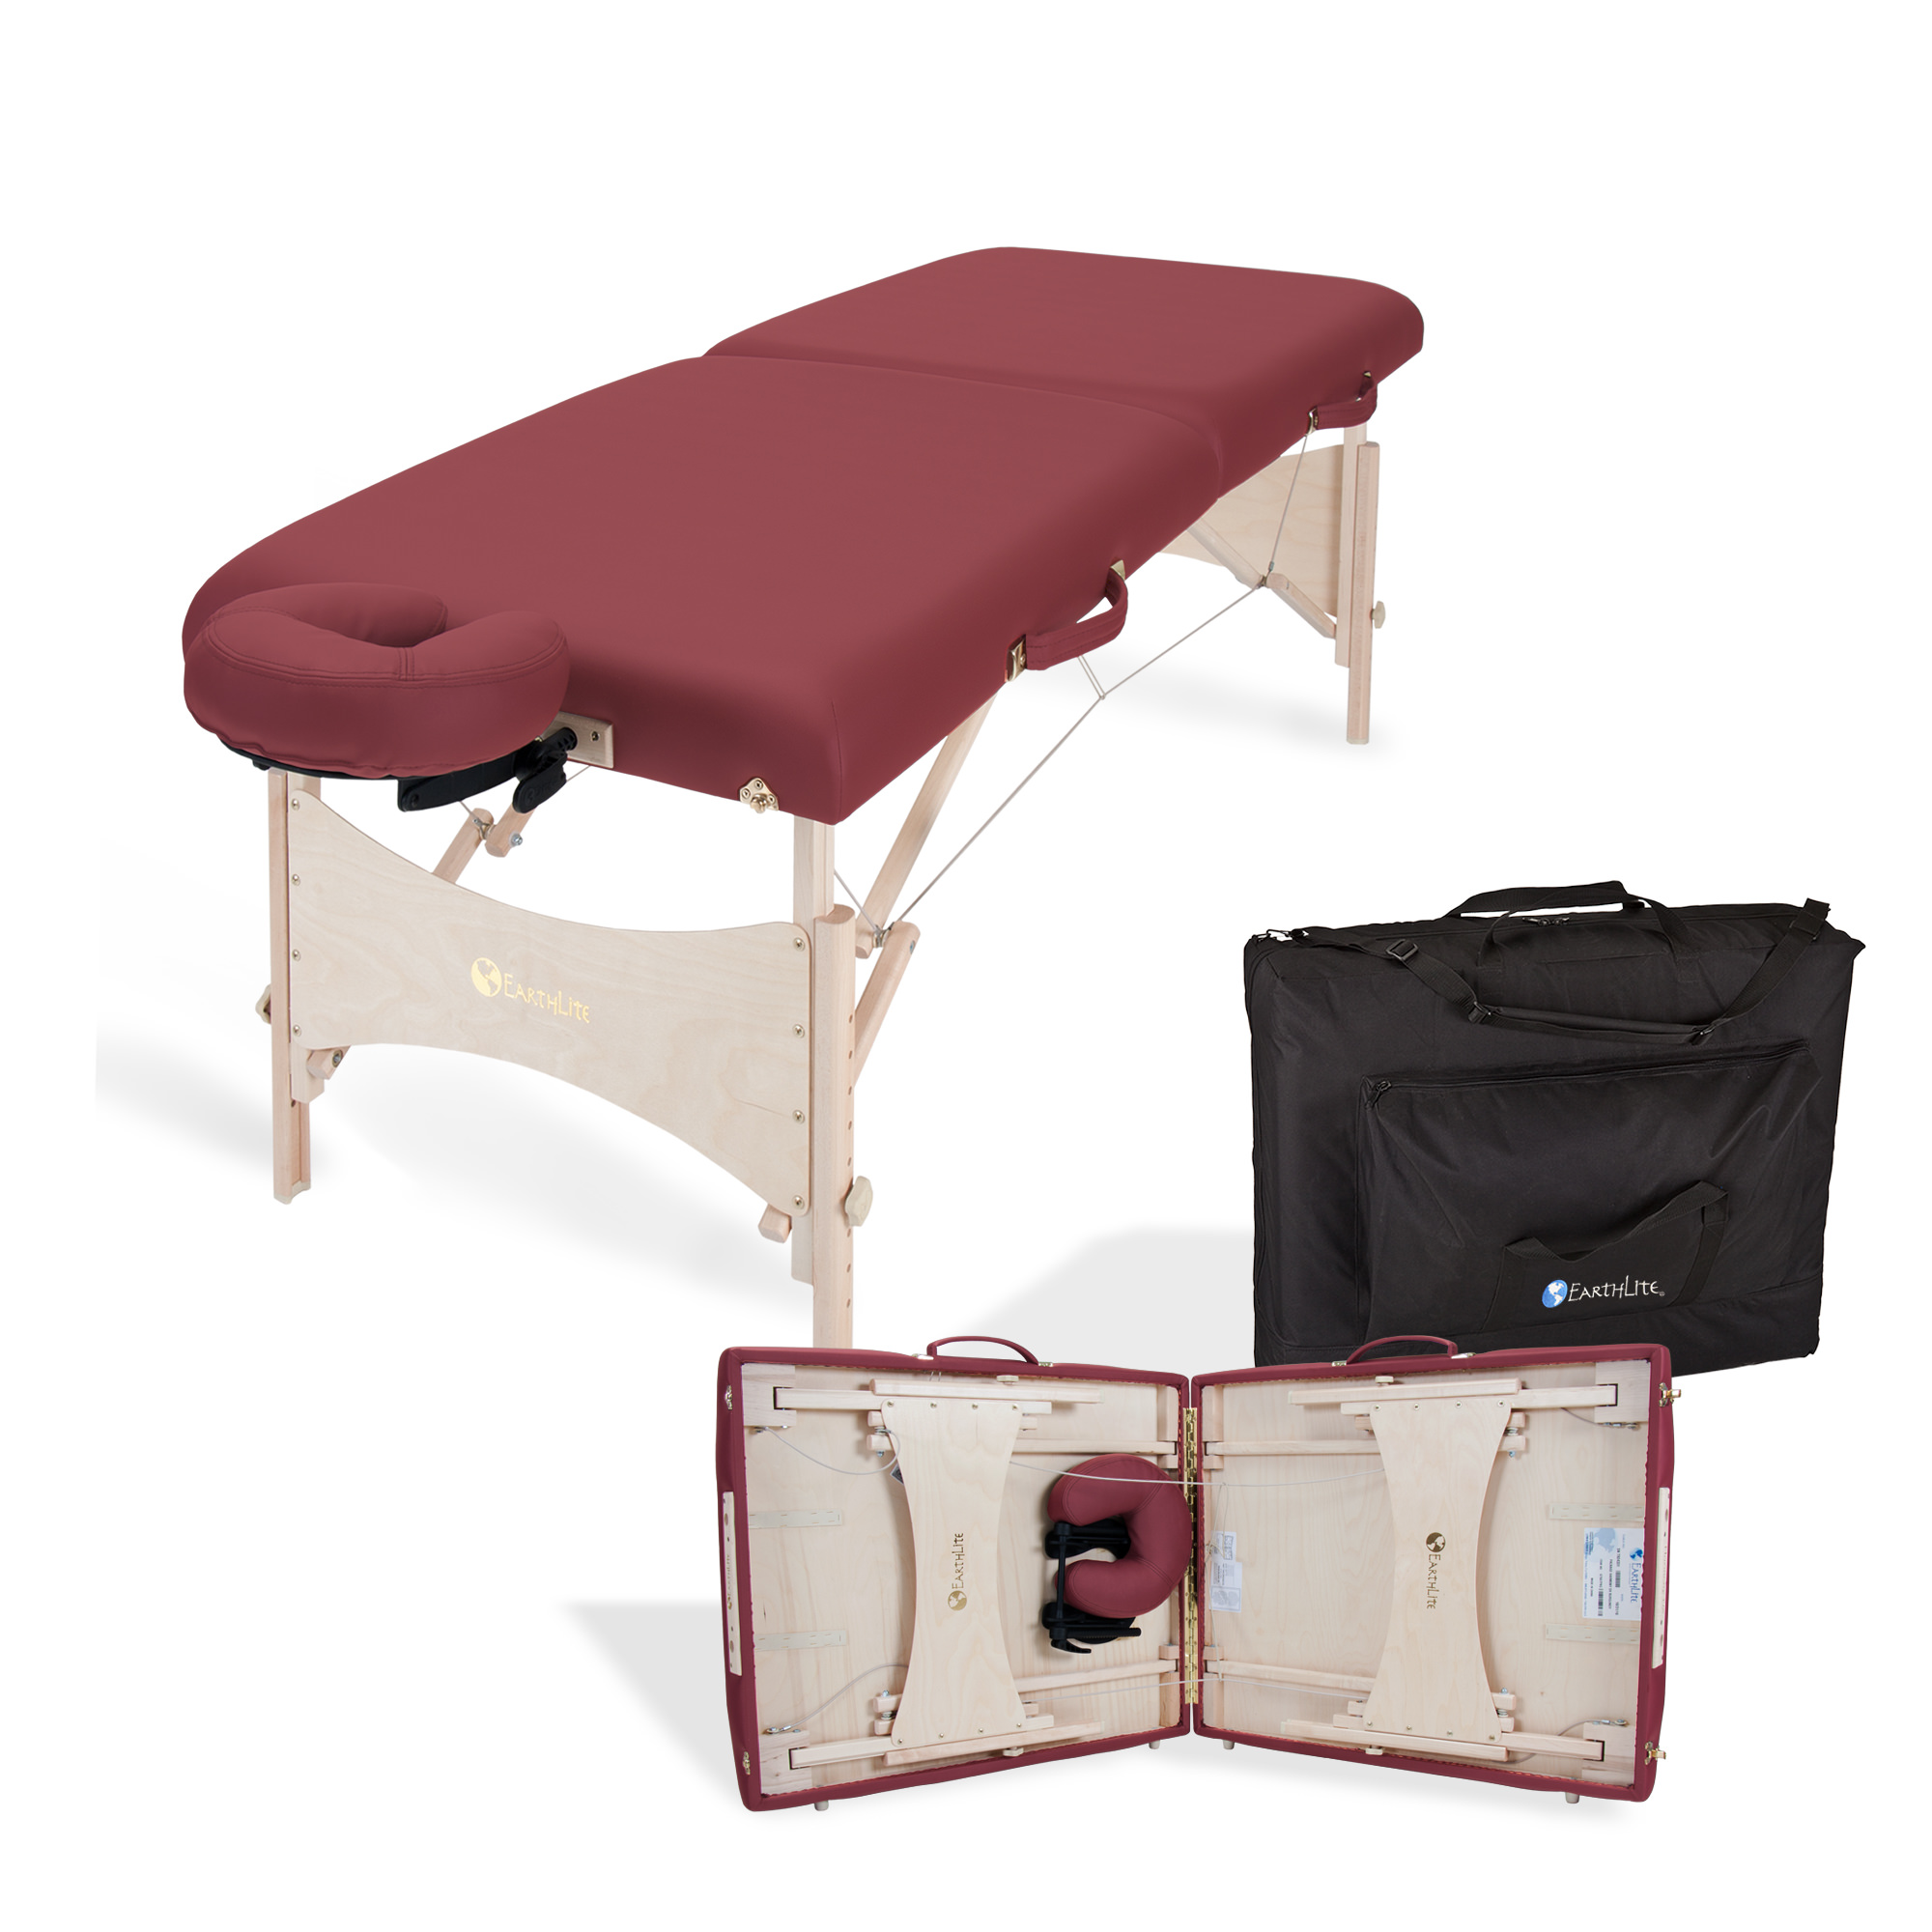 EARTHLITE Harmony DX Portable Massage Table Package xe2x80x93 Eco-Friendly Design, Deluxe Adjustable Headrest, Hard Maple, Aircraft Quality, up to 600 lbs